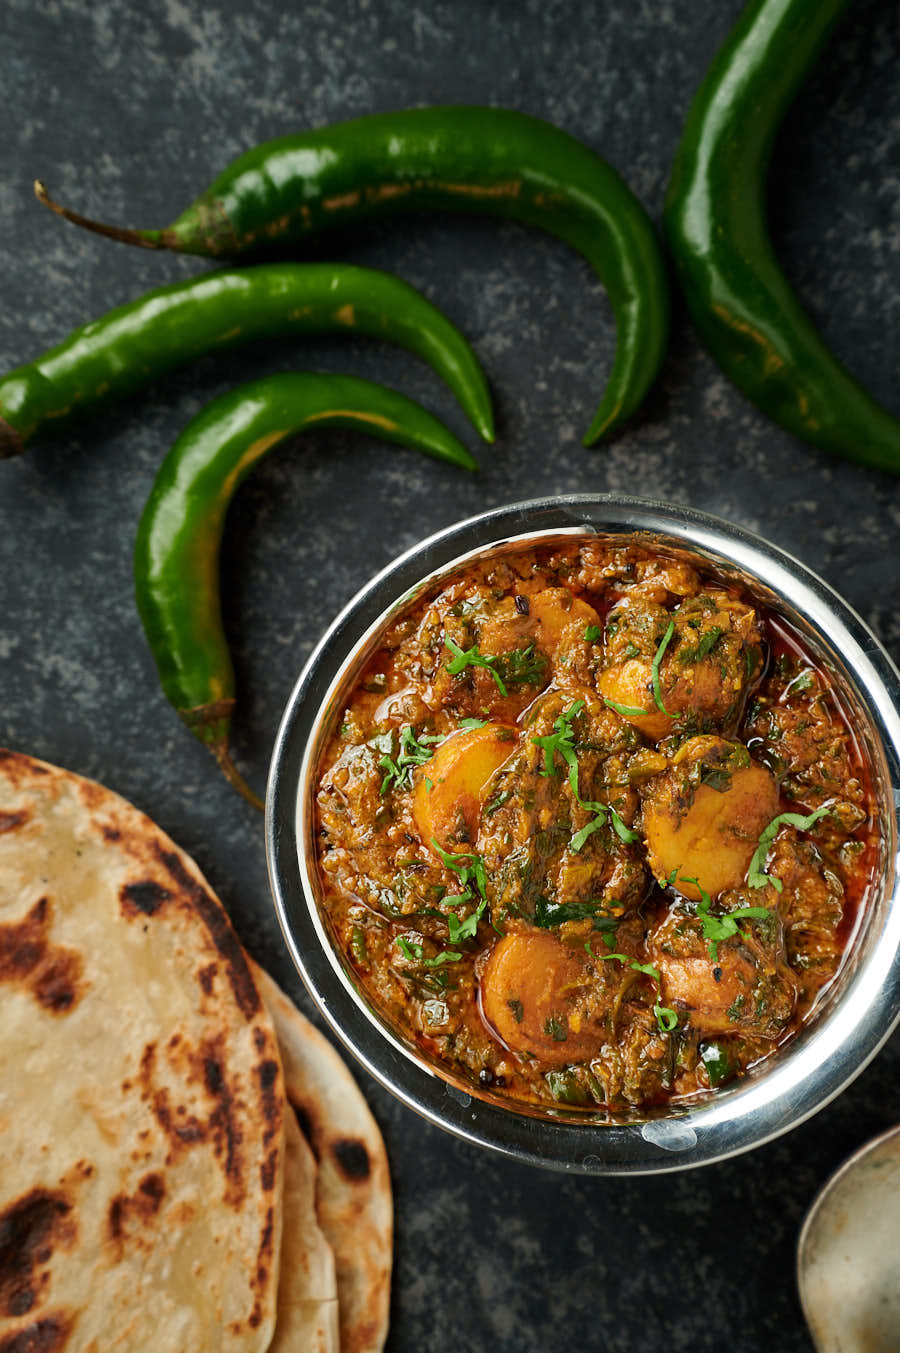 Saag aloo in a bowl surrounded by green chilies and parathas.